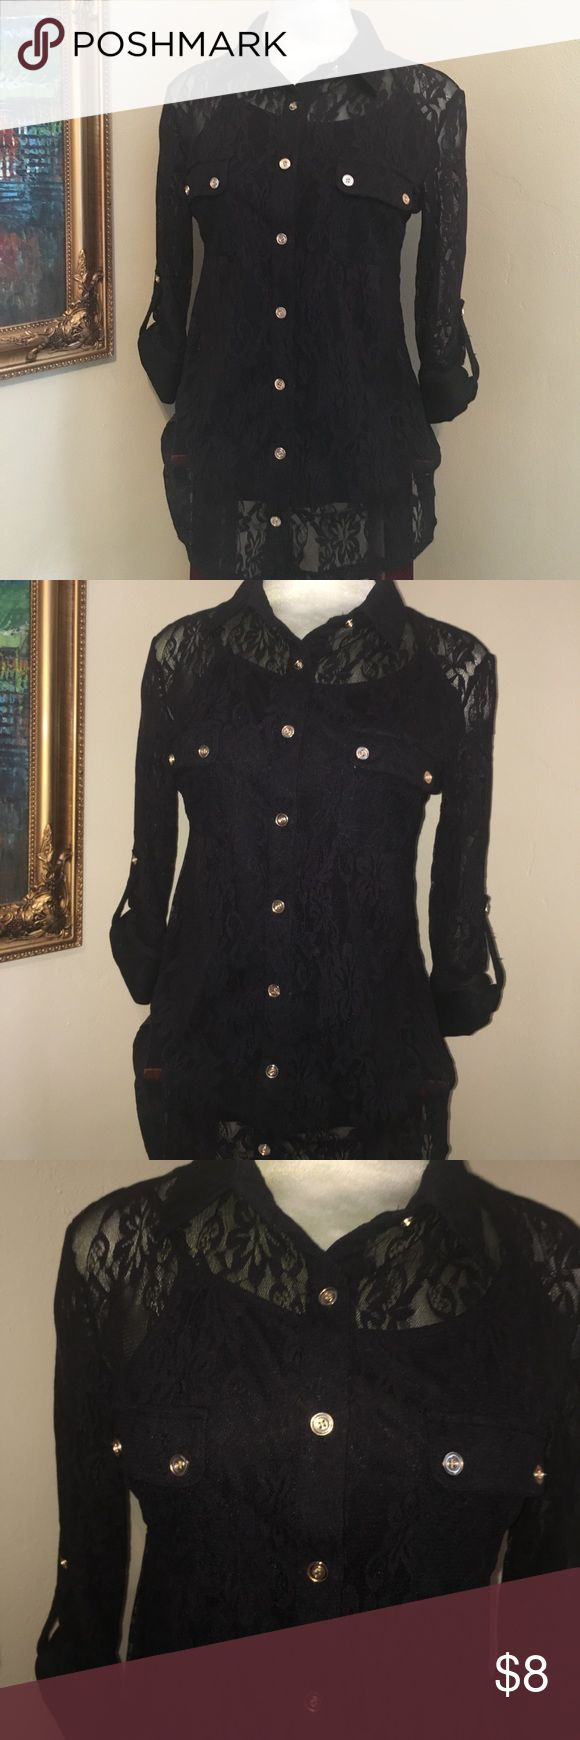 Black Lace Button Down set A gorgeous black lace Button Down Shirt with black cami. Beautiful gold button front & on each sleeve. Perfect cocktail or party shirt or even date night. EUC new directions Tops Button Down Shirts